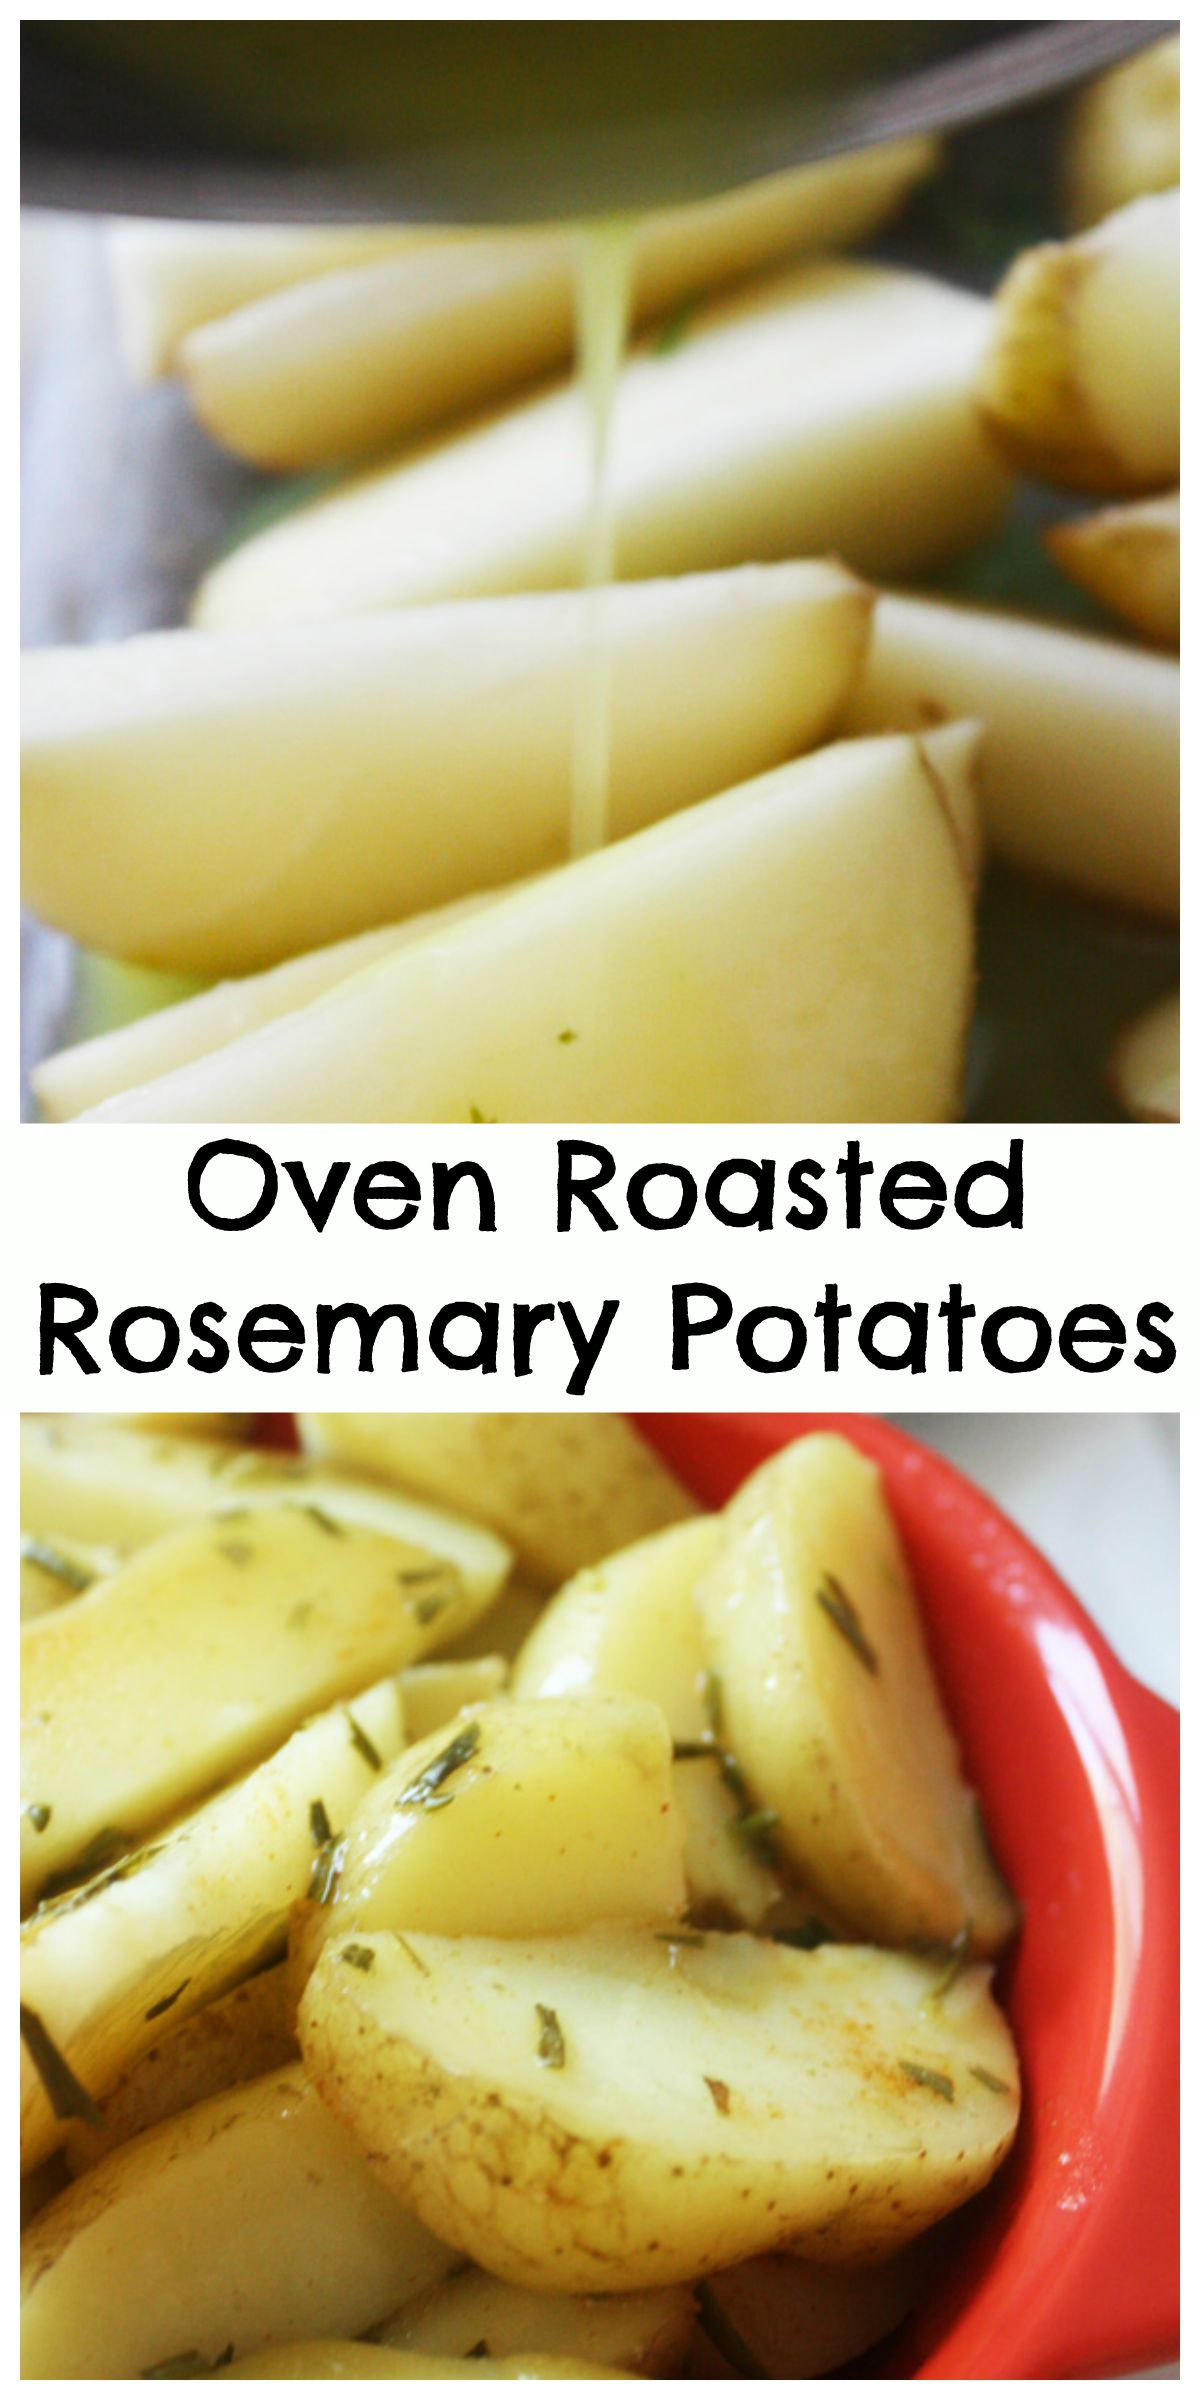 oven roasted rosemary potatoes pin